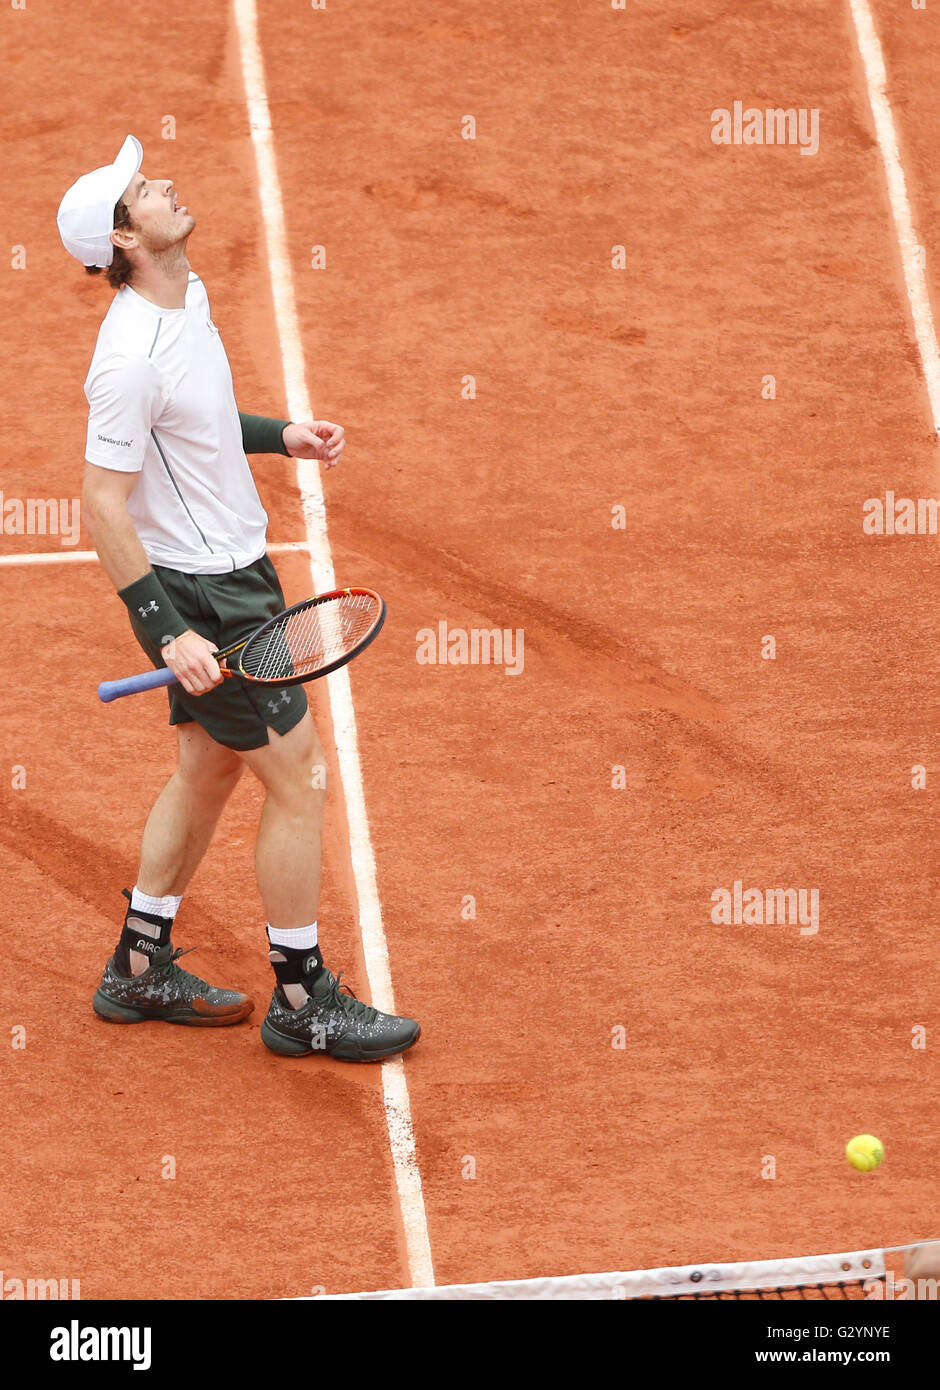 Paris, France. 5th June, 2016. Andy Murray of Britain reacts during men's singles final match against Novak - Stock Image